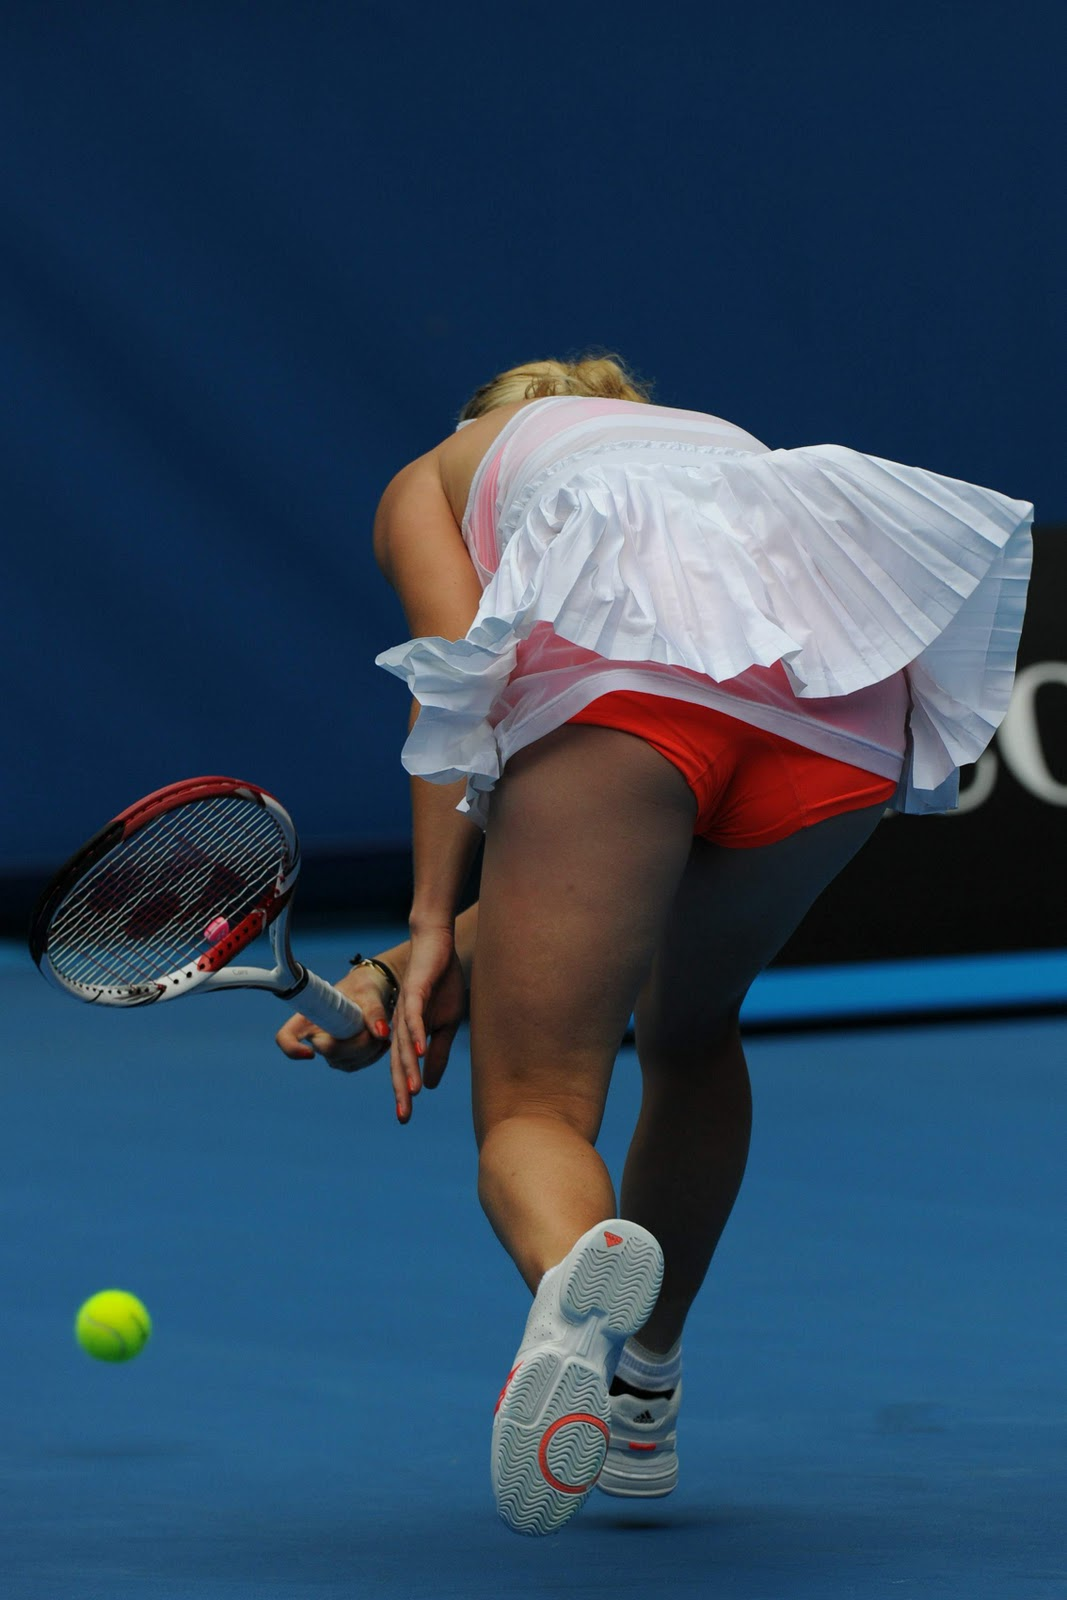 Blowjob at the tenis court - 1 part 7